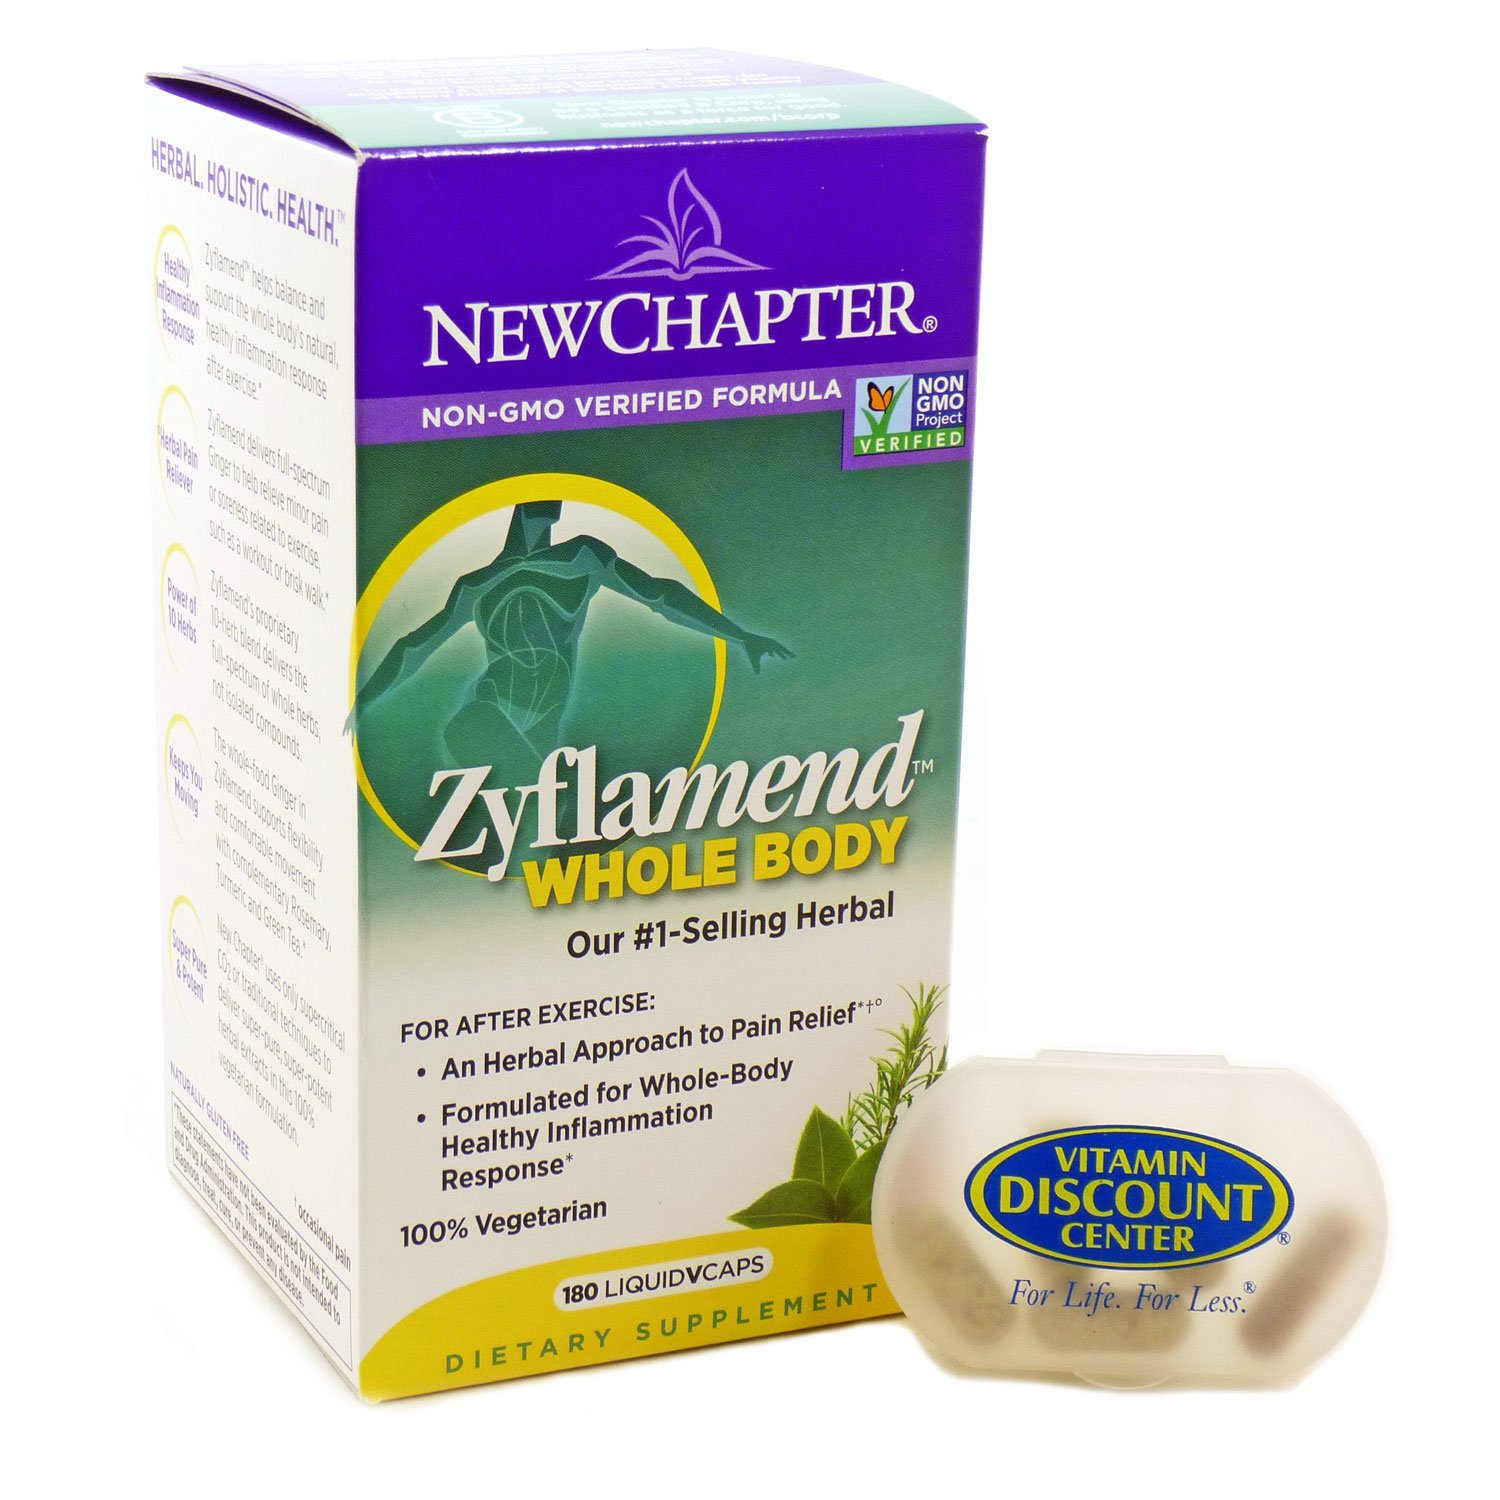 Bundle - 2 items: Zyflamend Whole Body By New Chapter - 180 LiquidVcaps and 1 VDC Pill Box by New Chapter